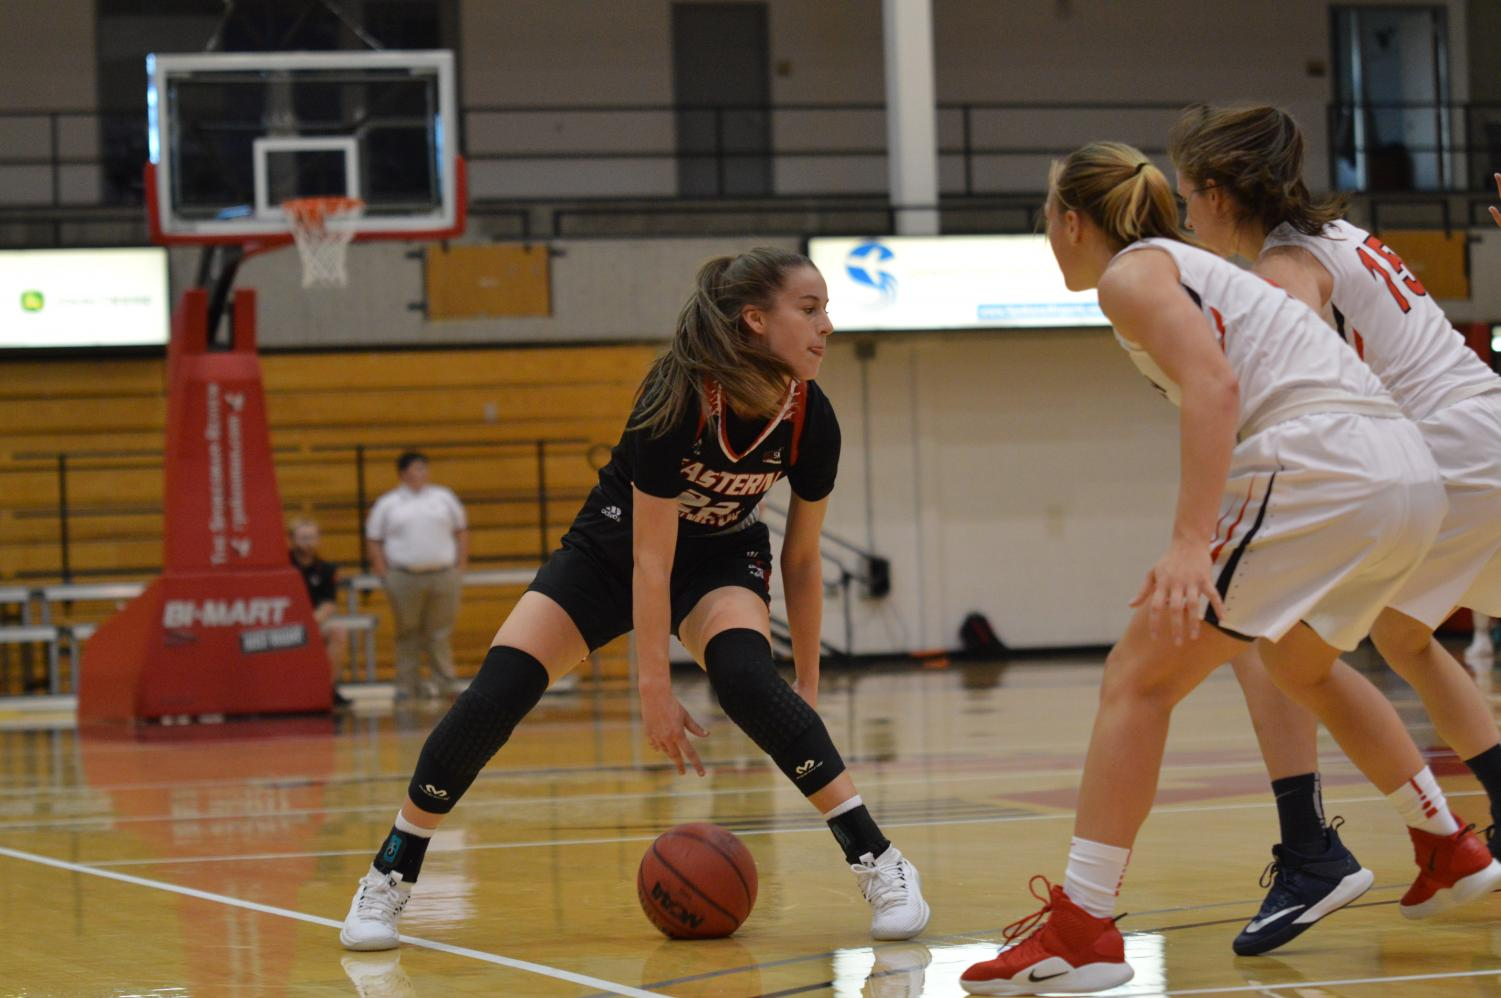 Sophomore Brittany Klaman crosses over on SFU defenders. Klaman finished the game with seven assists and six rebounds.